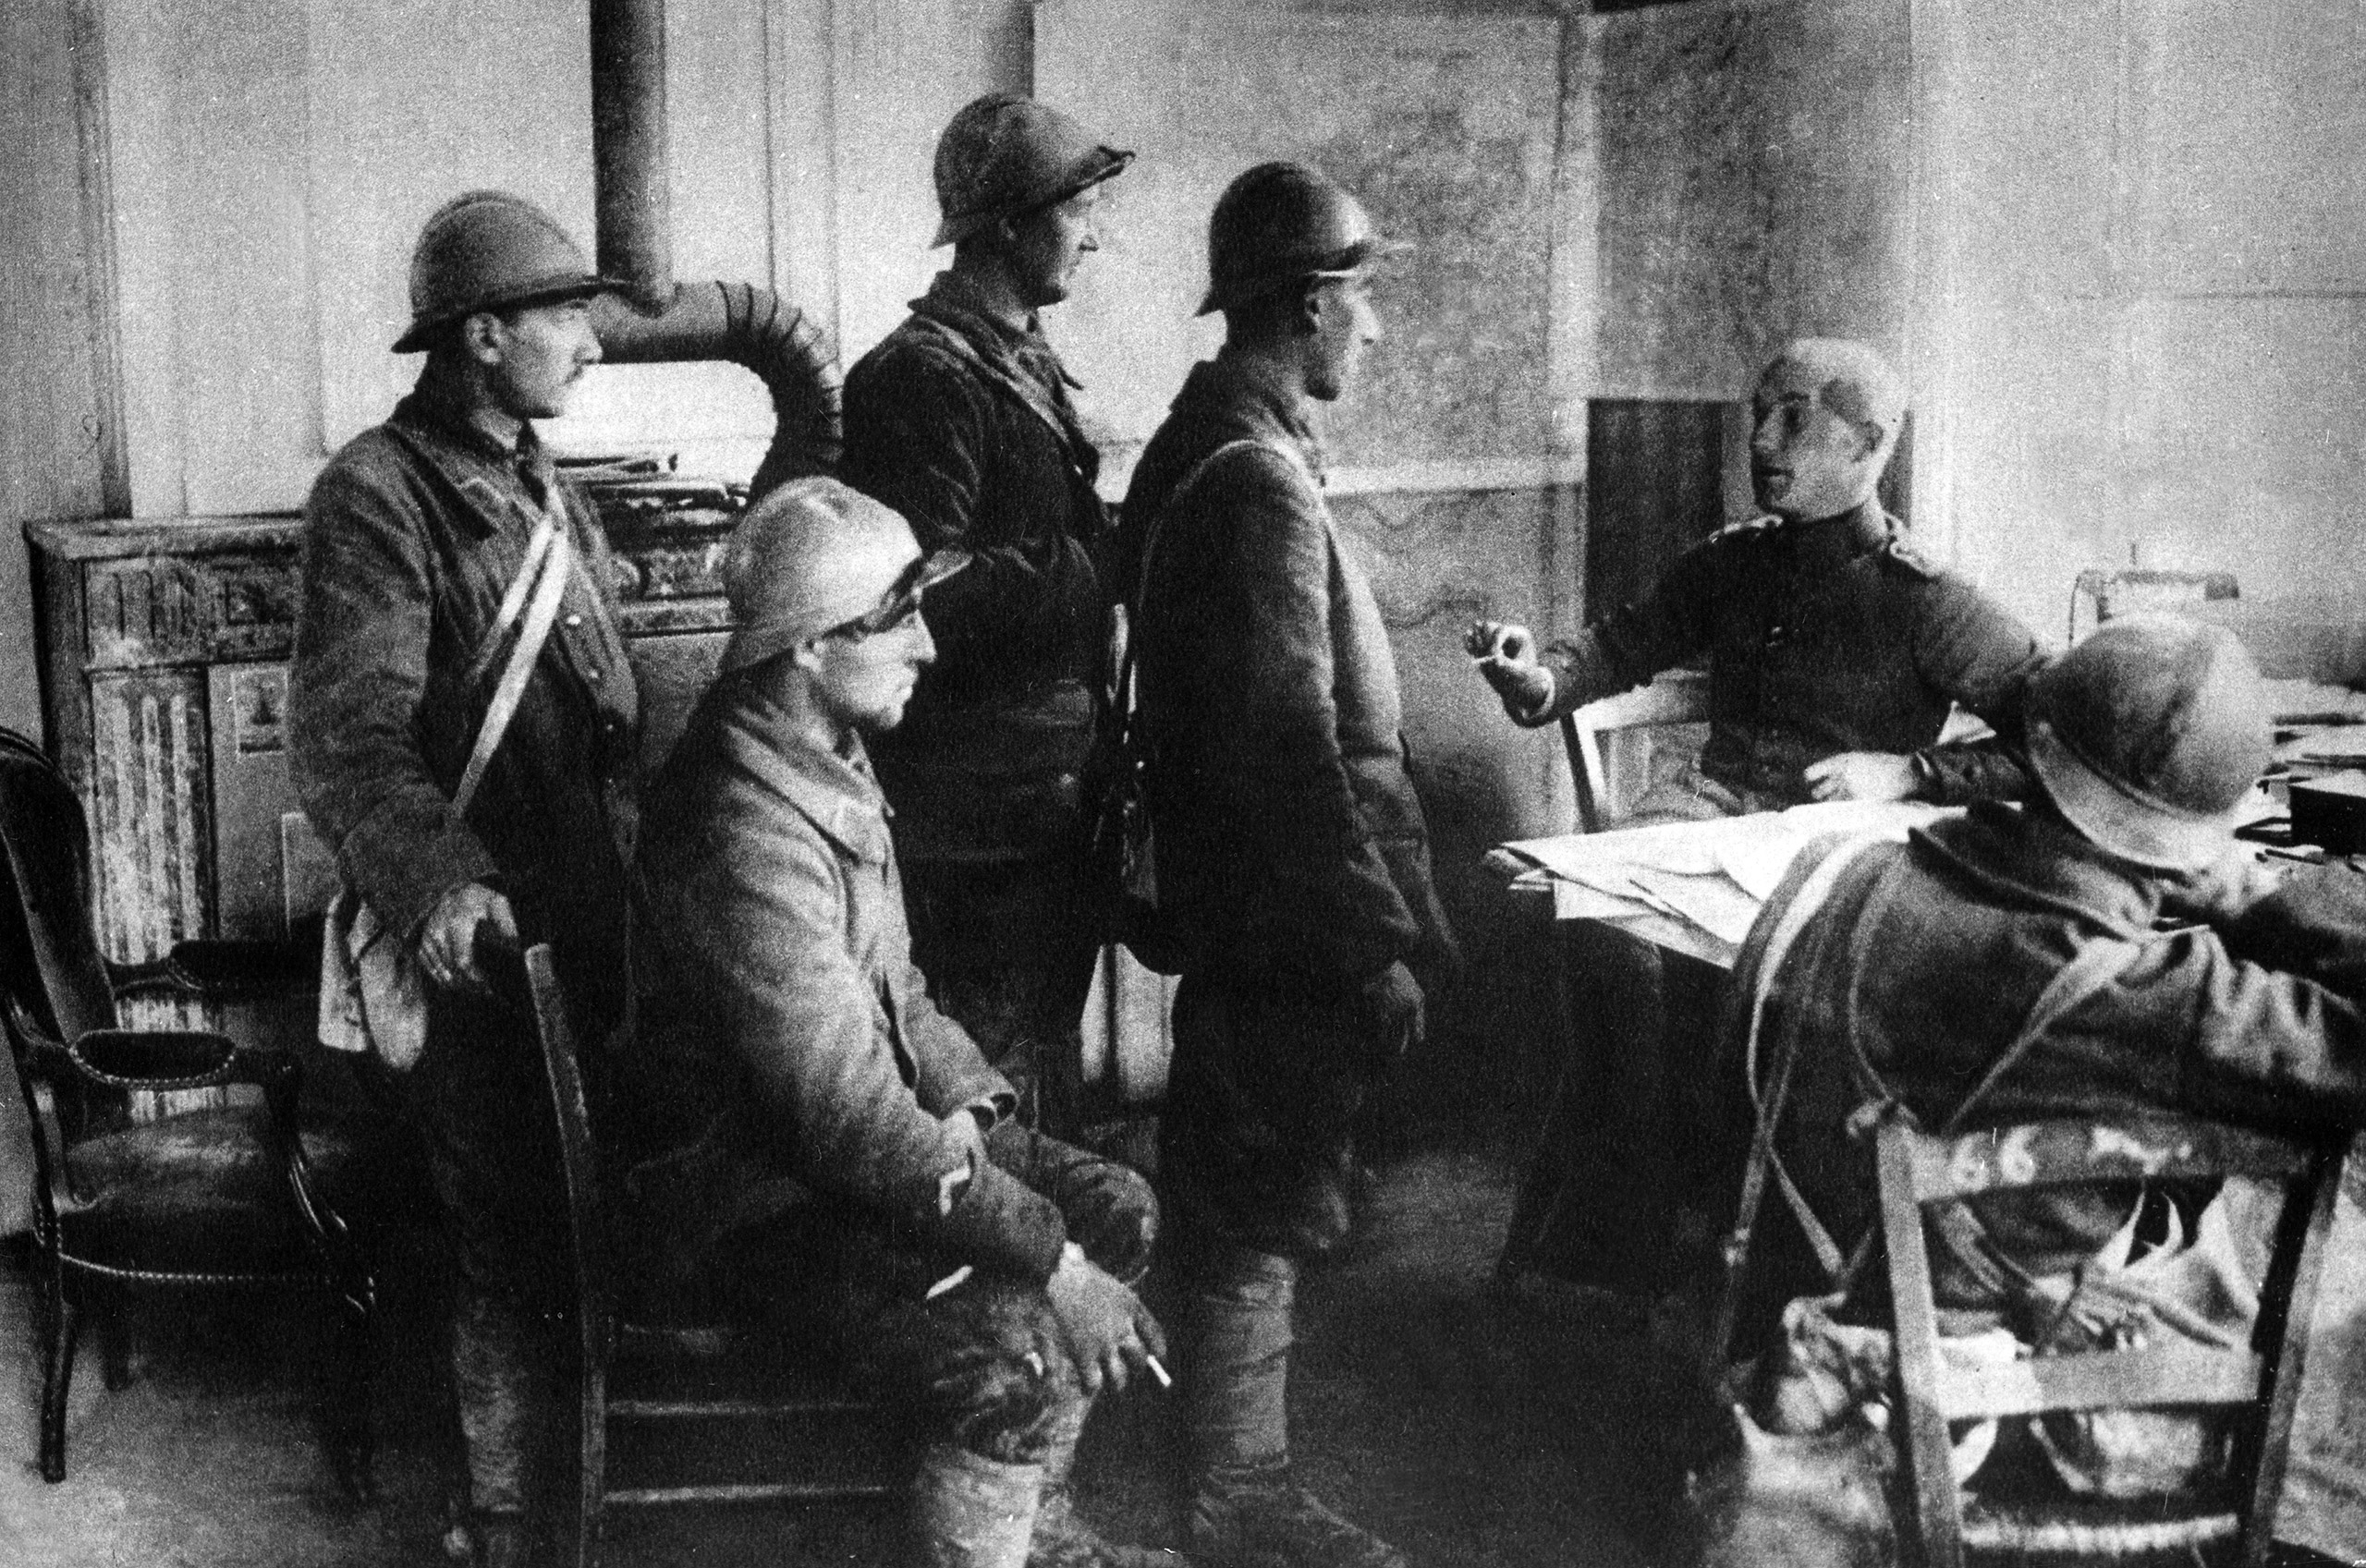 French soldiers taken prisoners during interrogation at a German staff quarter. April 1916, Battle of Verdun.